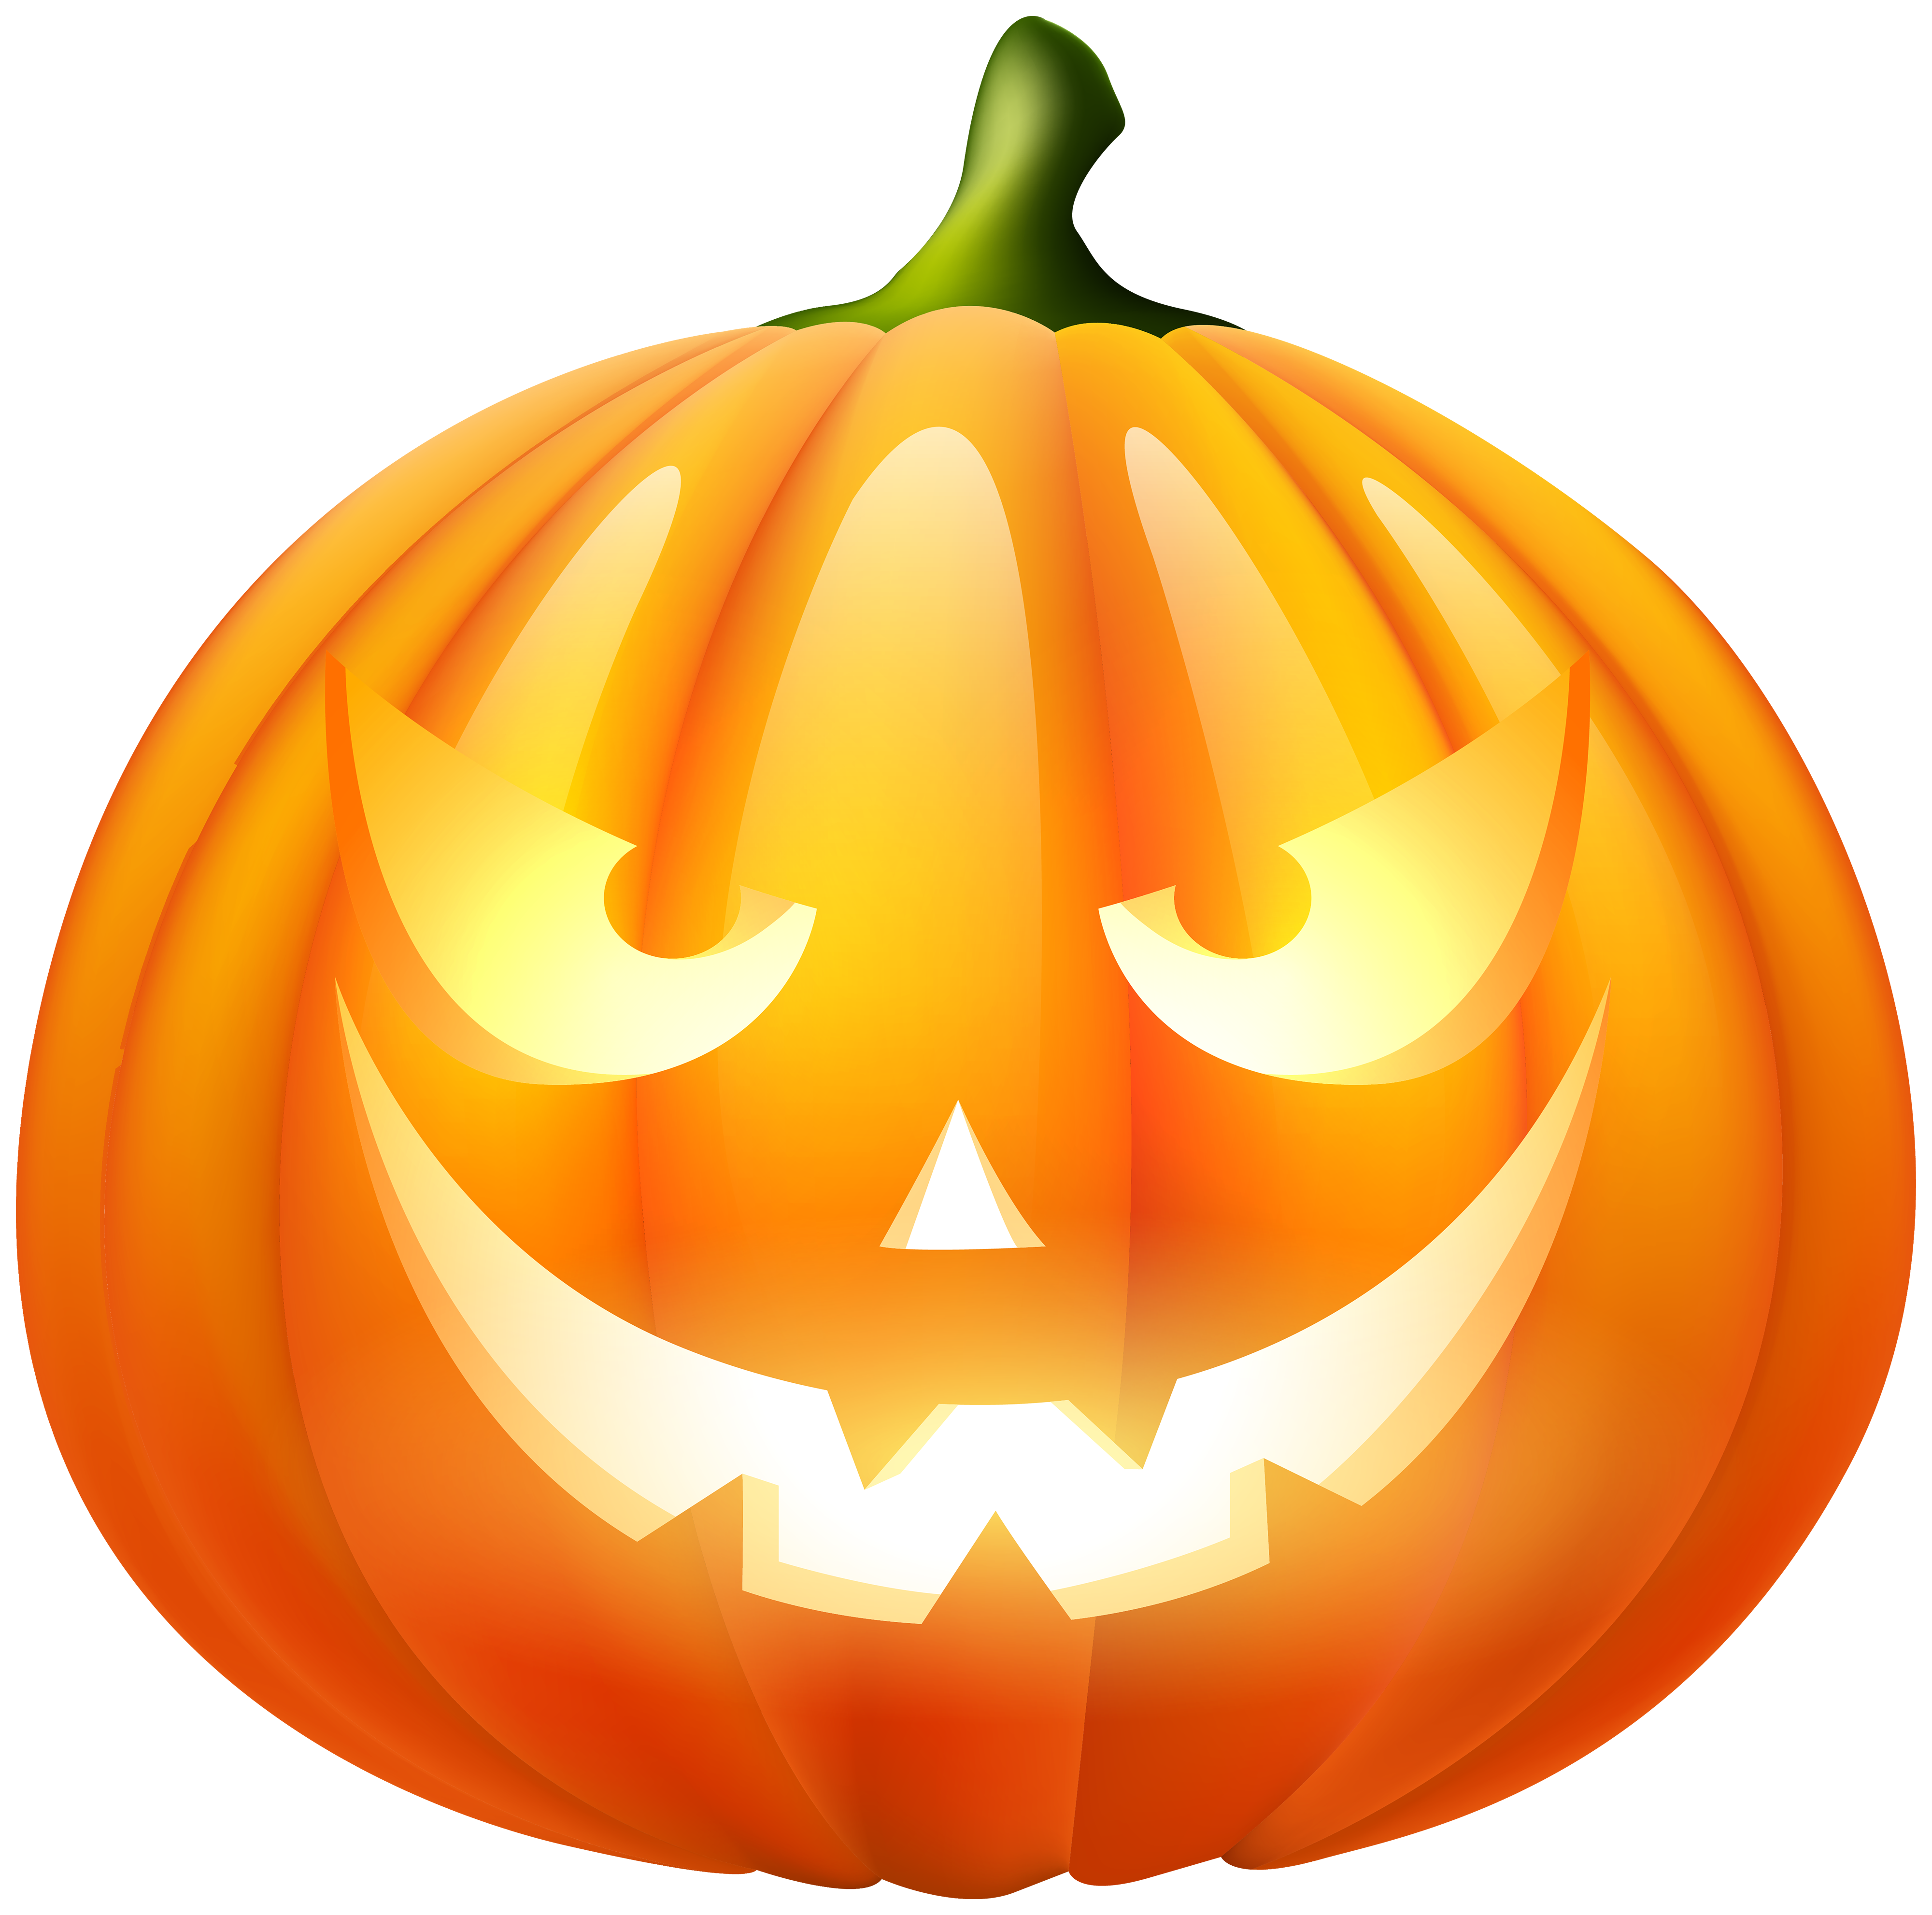 Halloween png cartoon. Hayride clipart pumpkin party